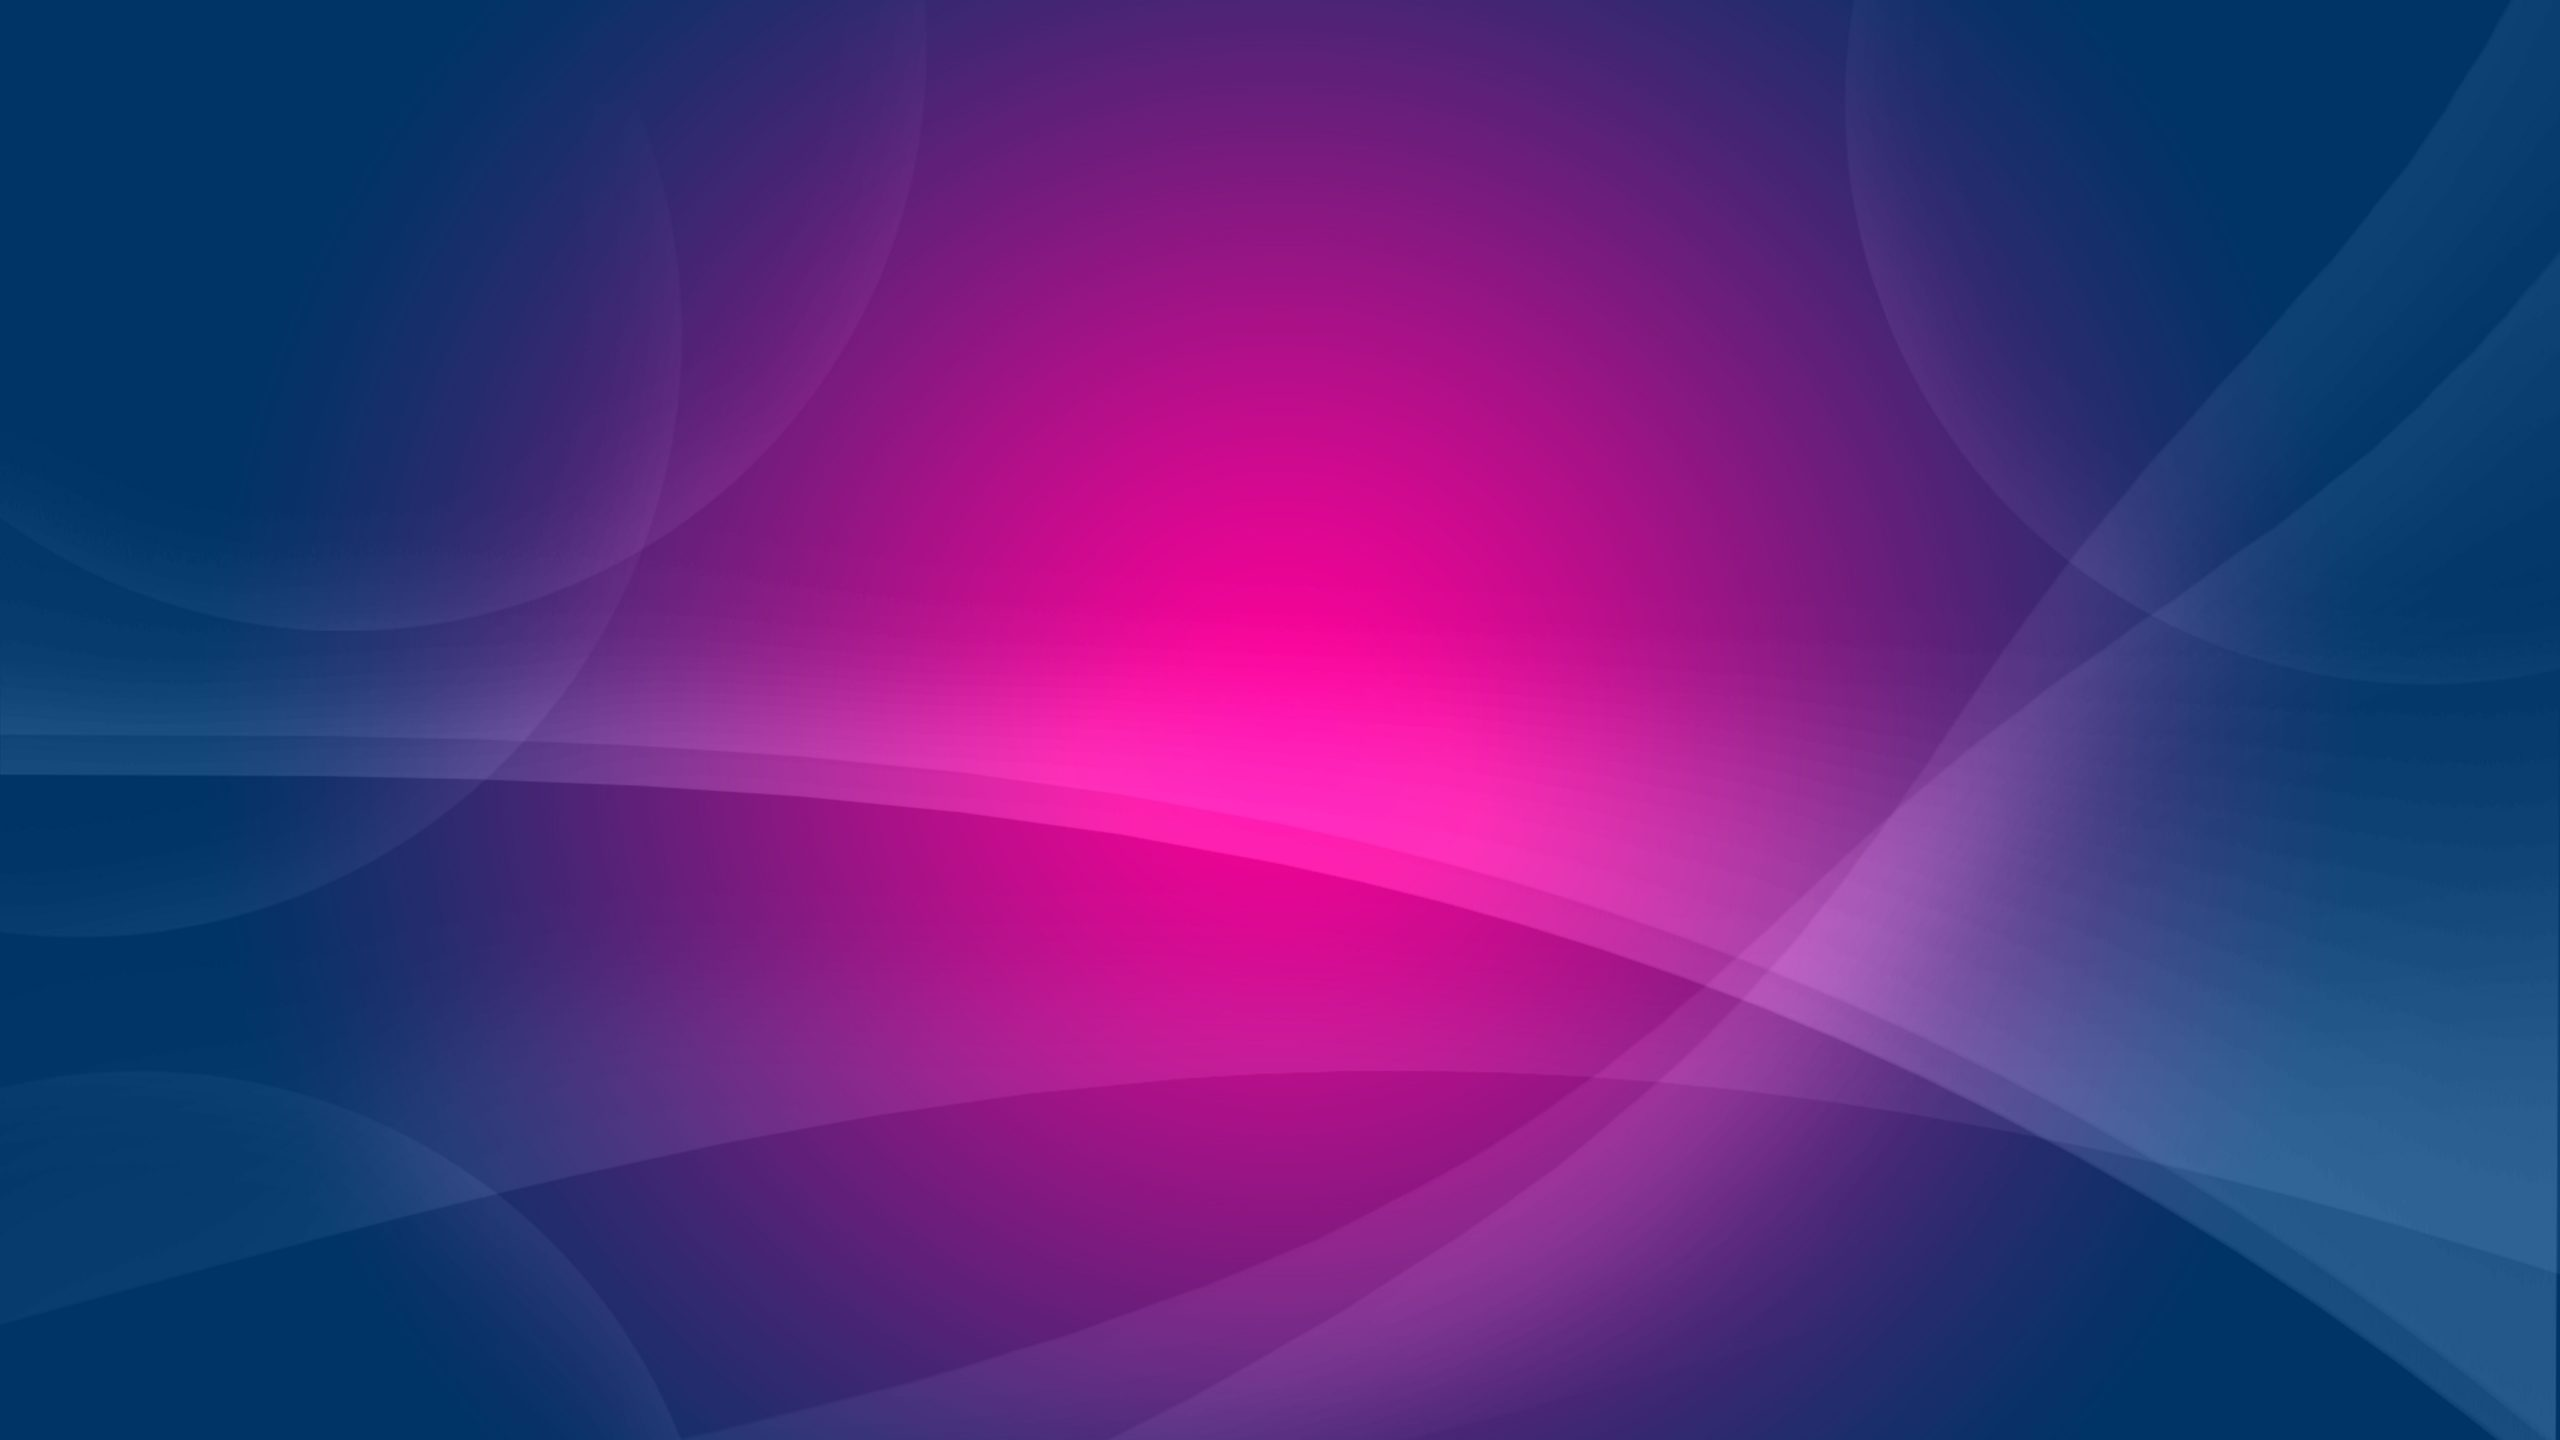 Purple and violet background wallpaper